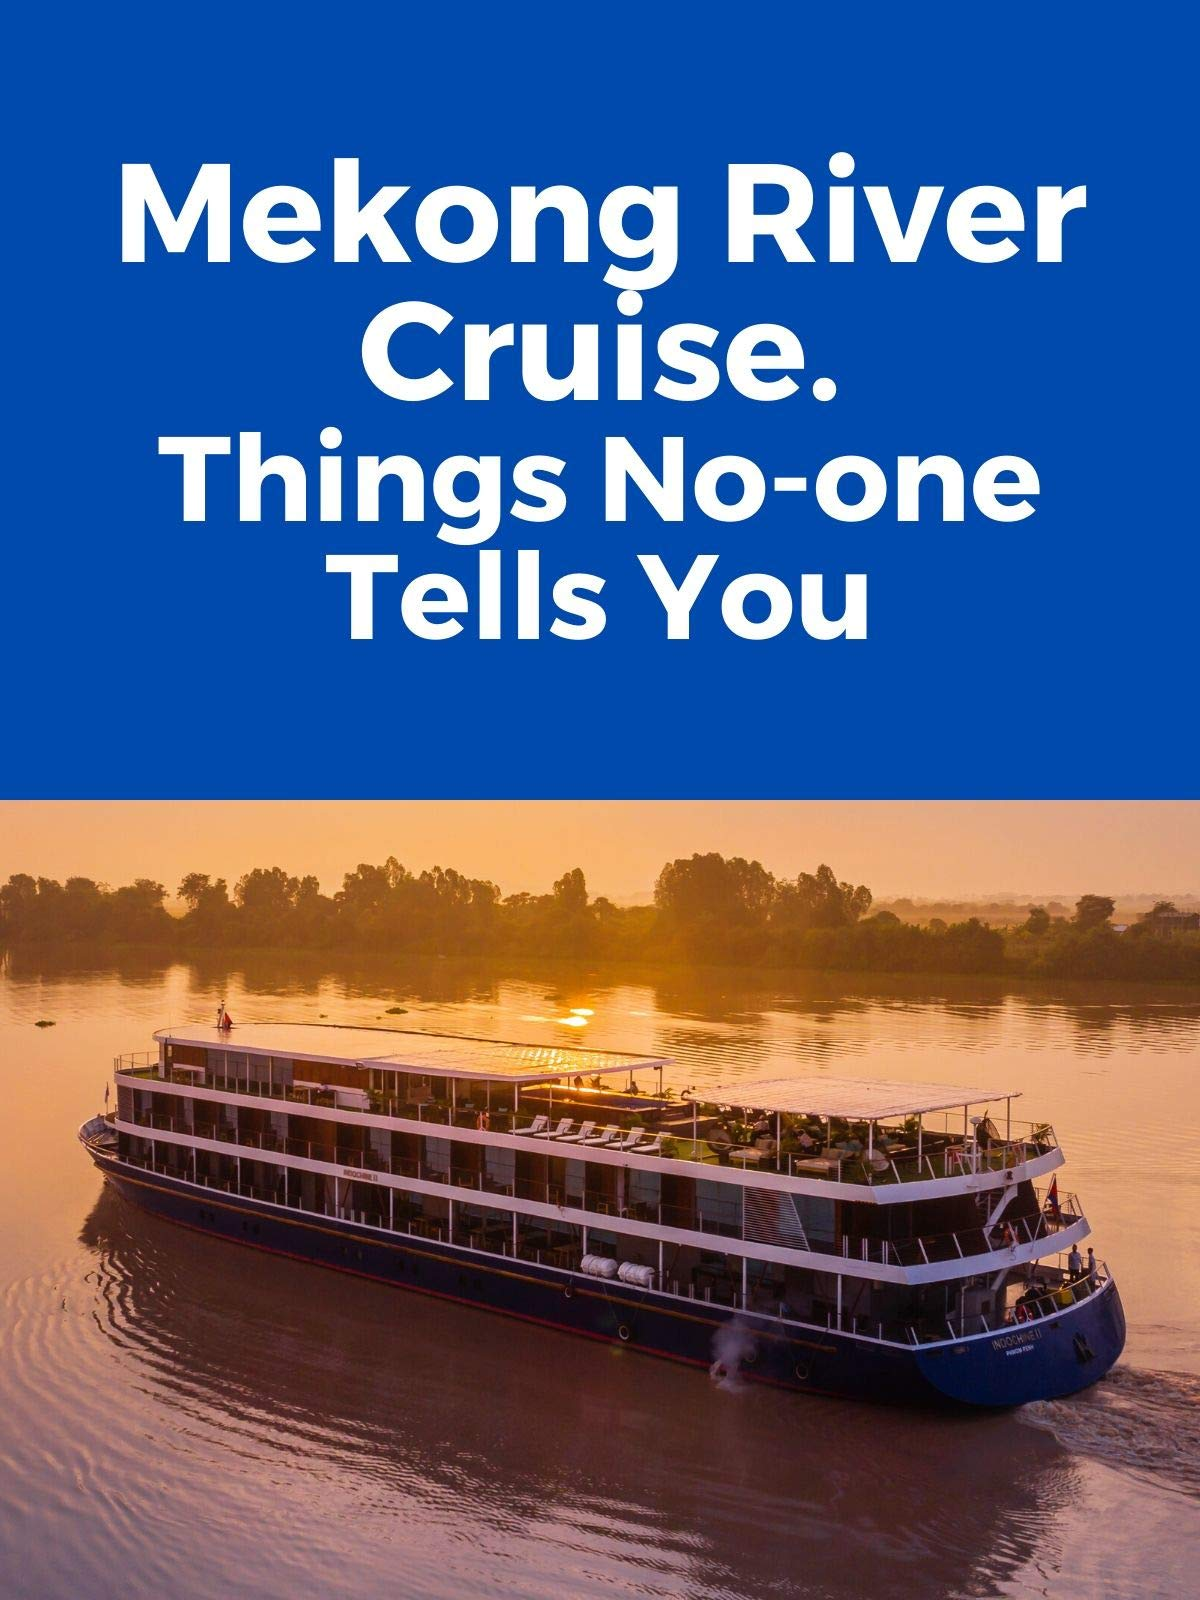 Clip: Mekong River Cruise. Things No-one Tells You